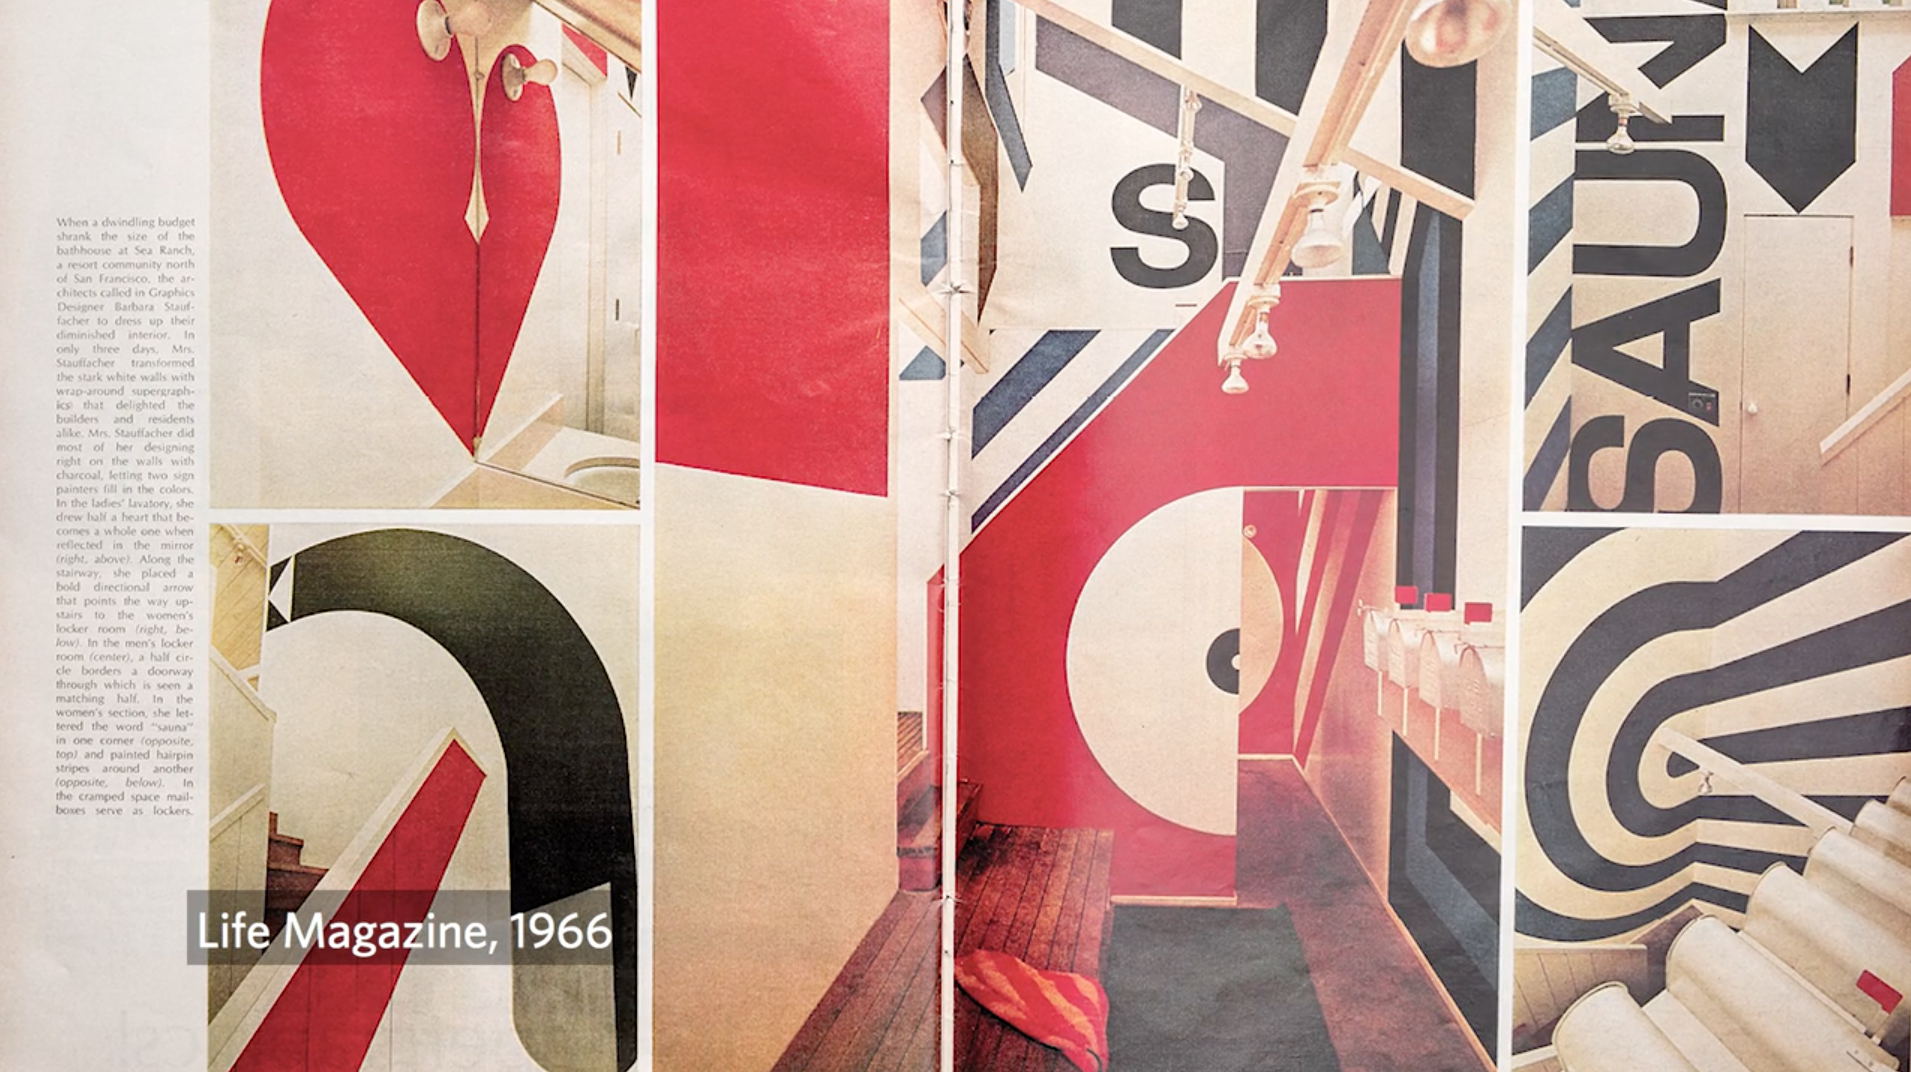 Supergraphics from Sea Ranch in a 1966 Life magazine article